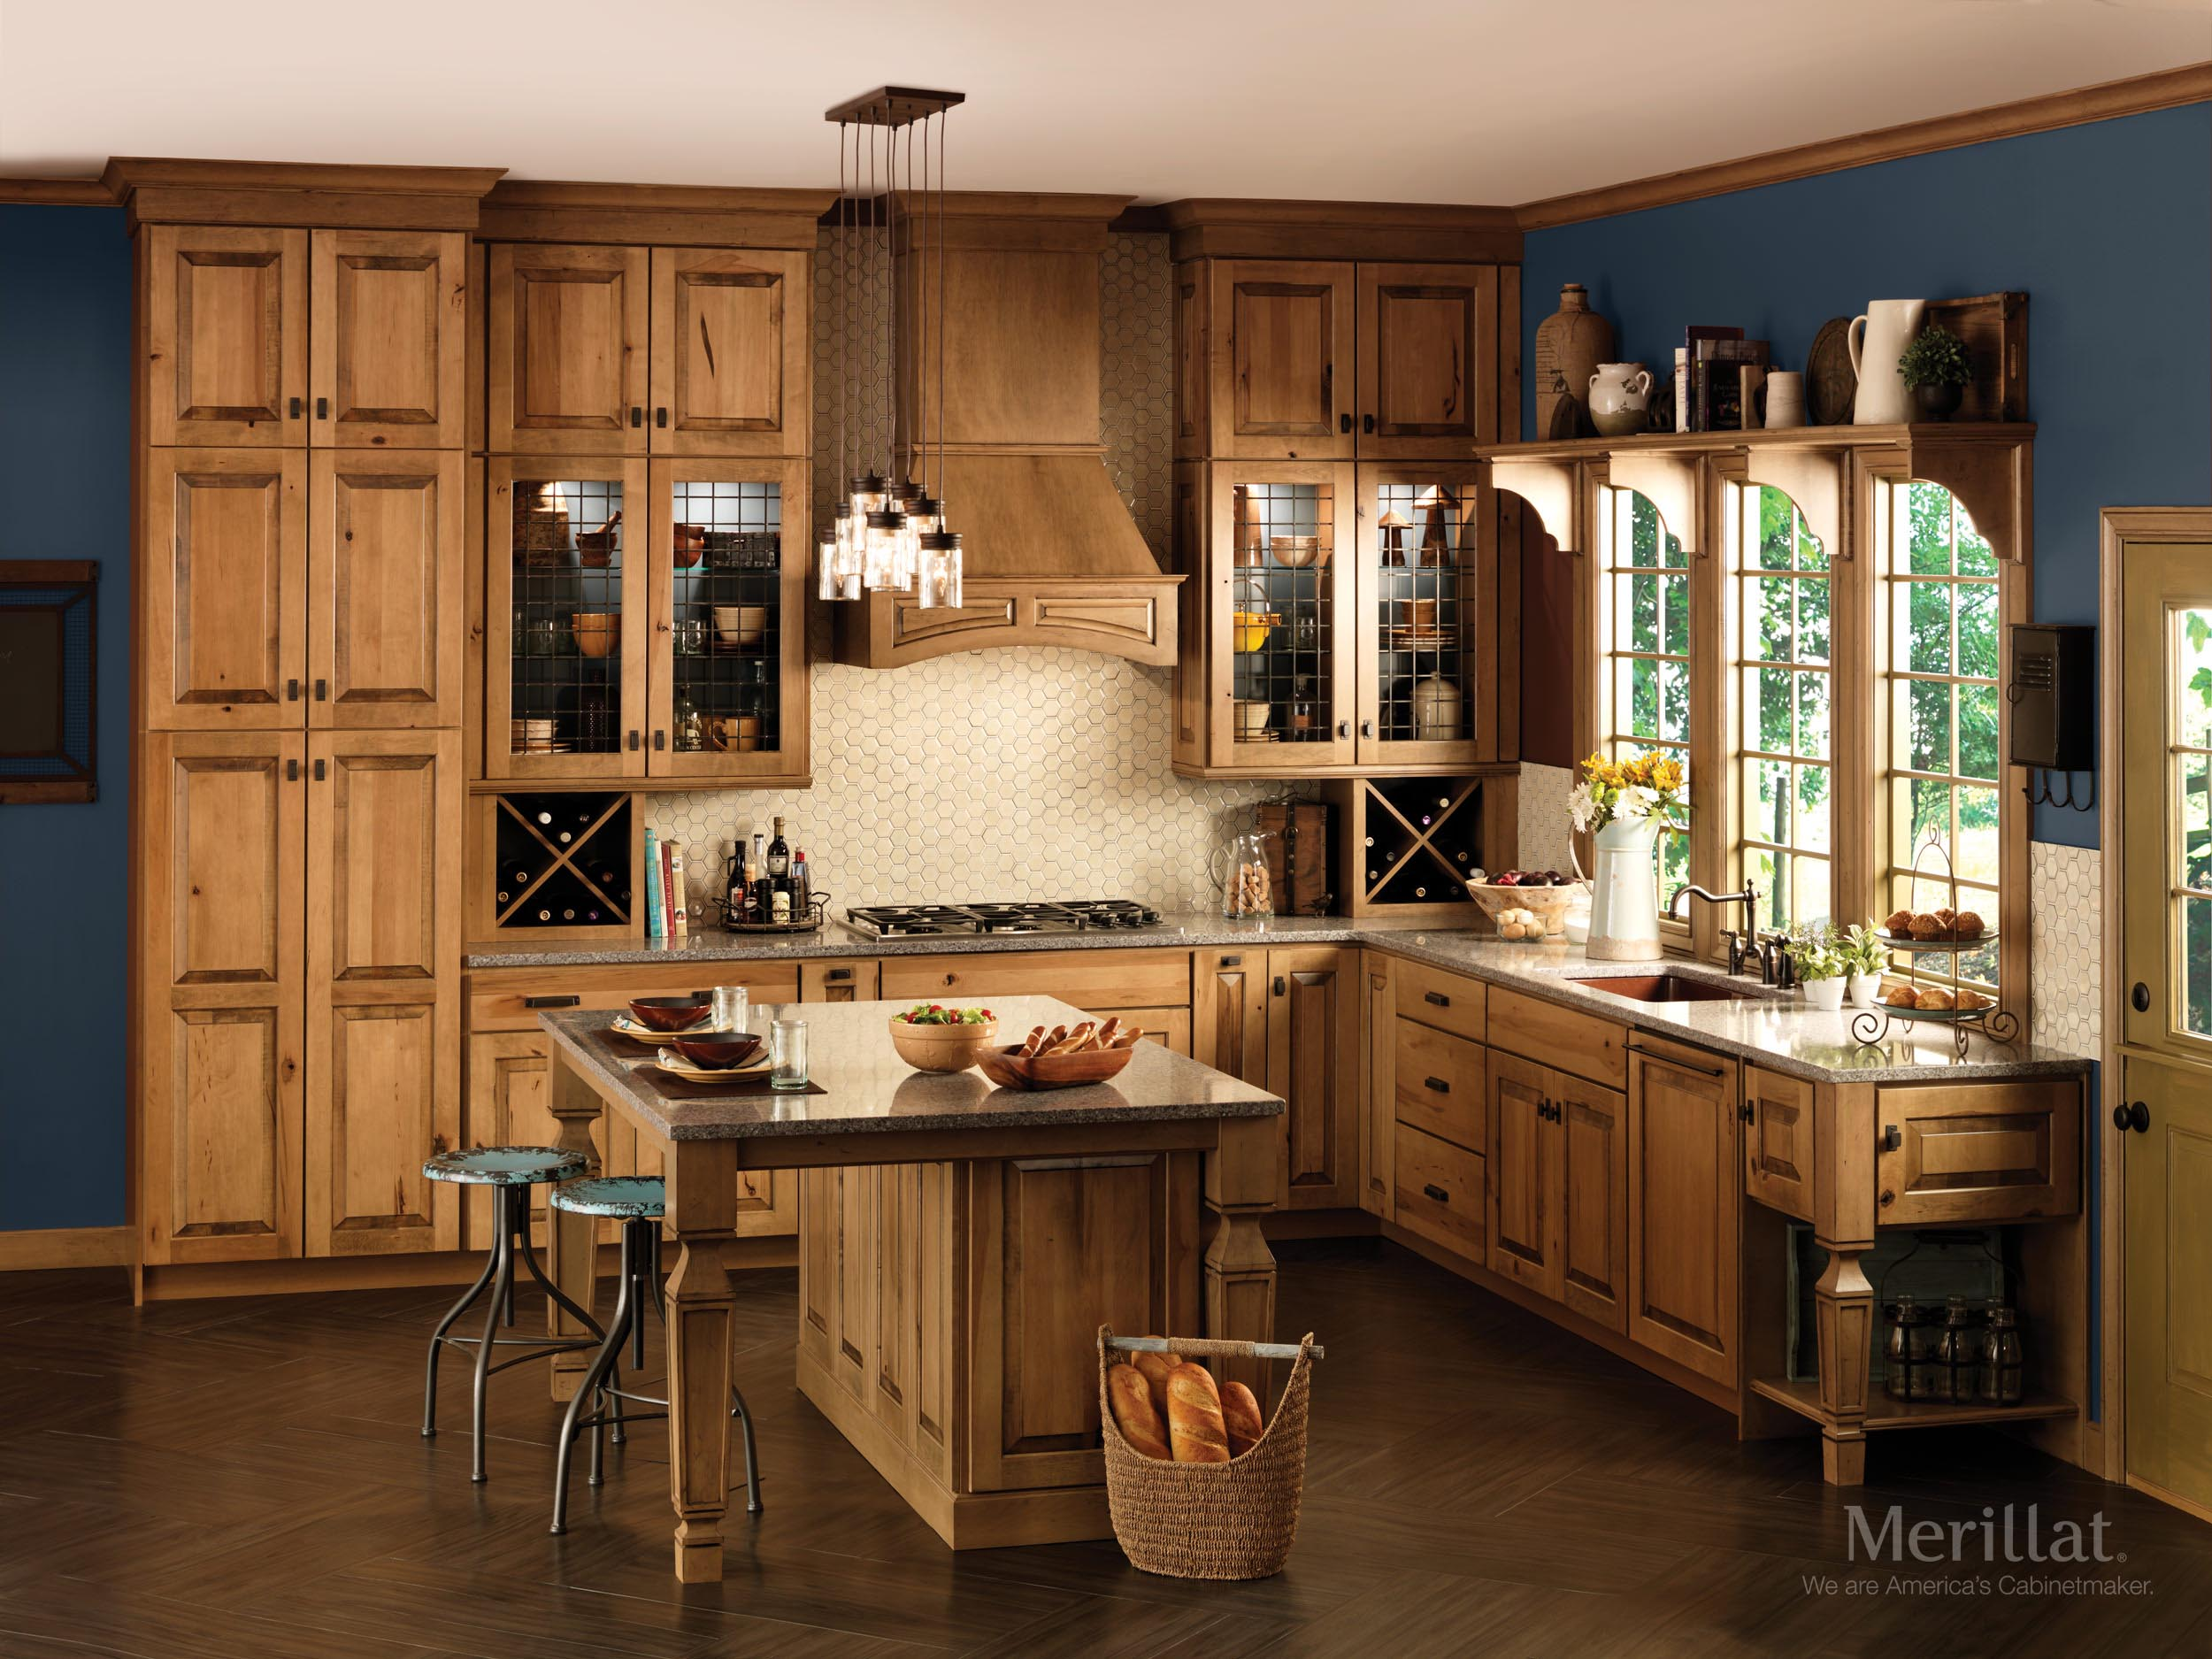 kitchen bath cabinets craftwood products for builders and rh craftwoodproducts com